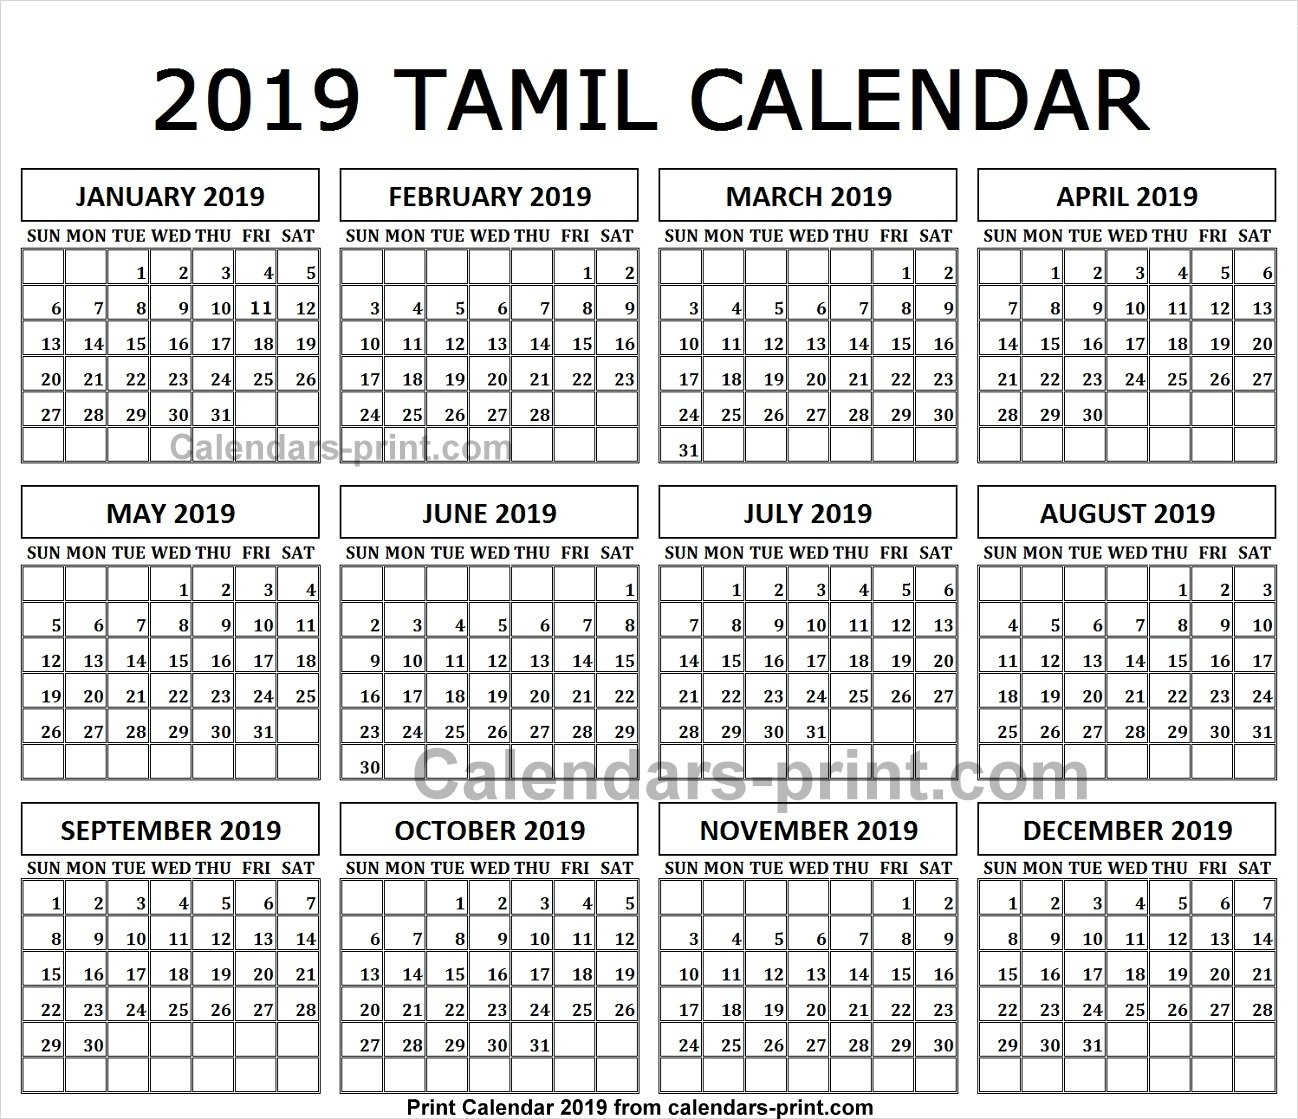 Monthly Calendar 2019 Tamil Printable Template With Notes | Holidays Calendar 2019 Tamil